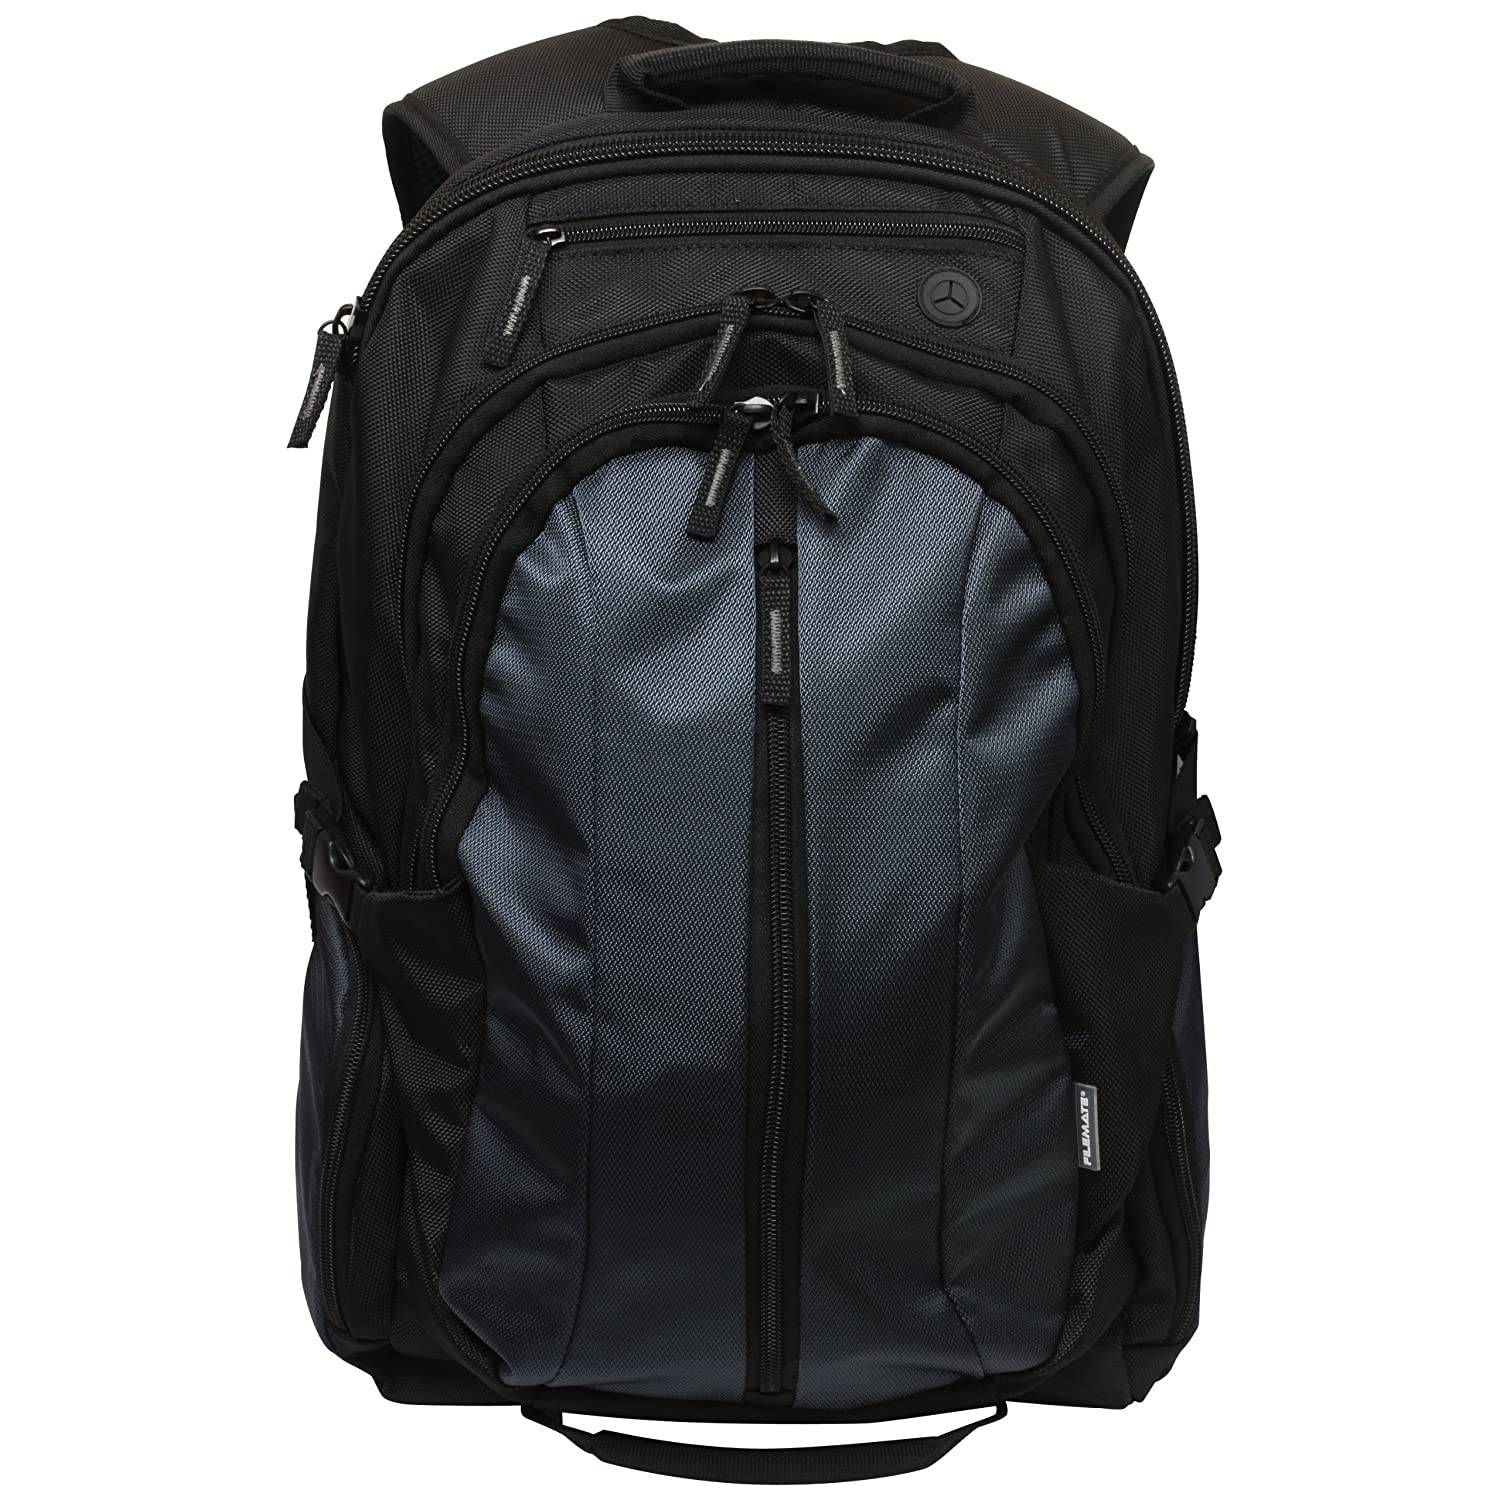 FileMate Reach Pro Series Functional Backpack, Black/Grey (3FMND850BK16-R) good